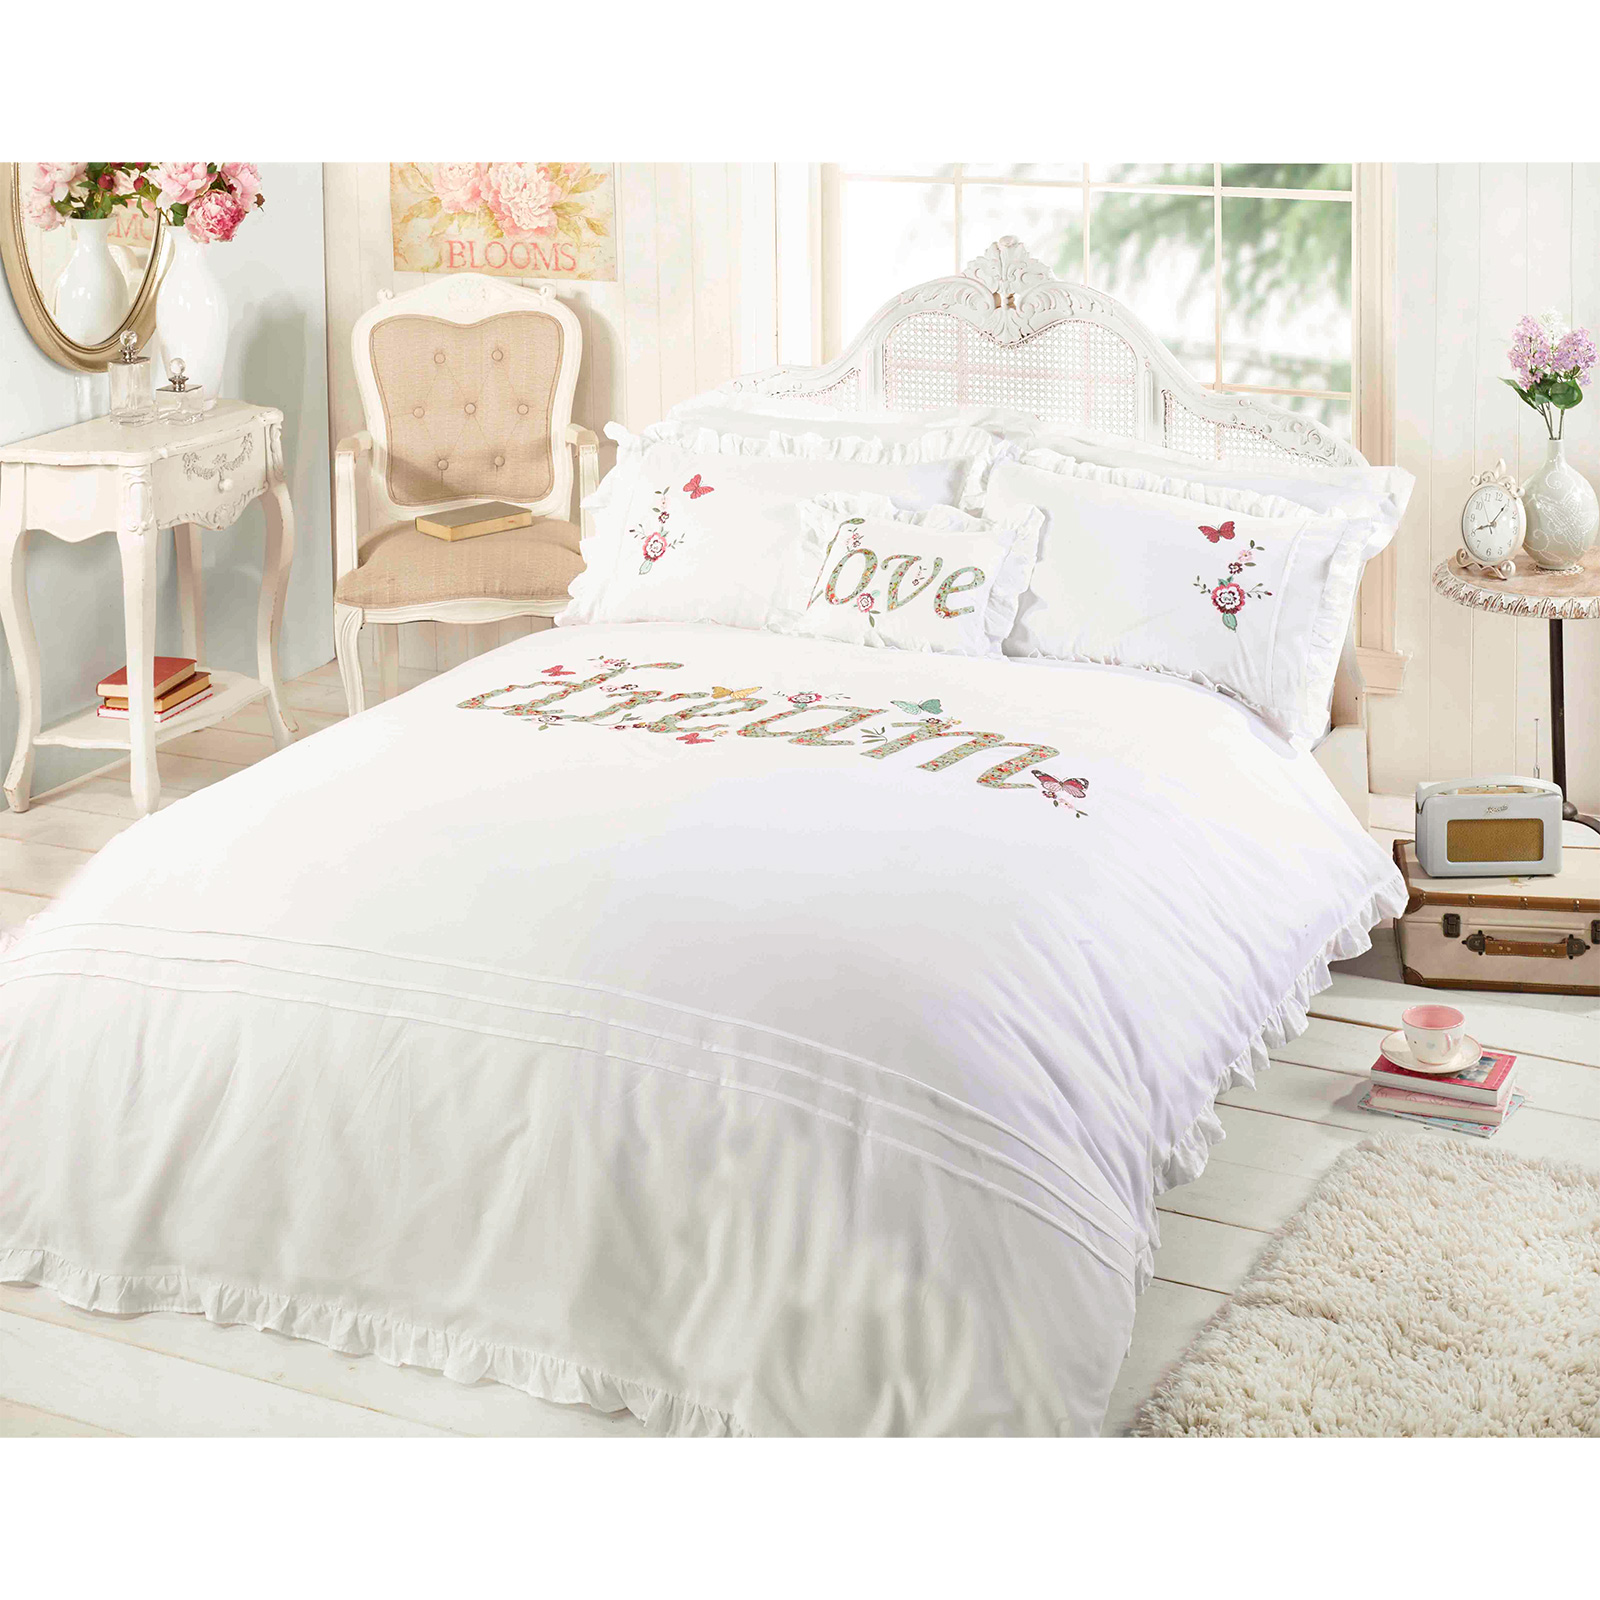 Shabby Chic Bedding: Luxury Embroidered Applique